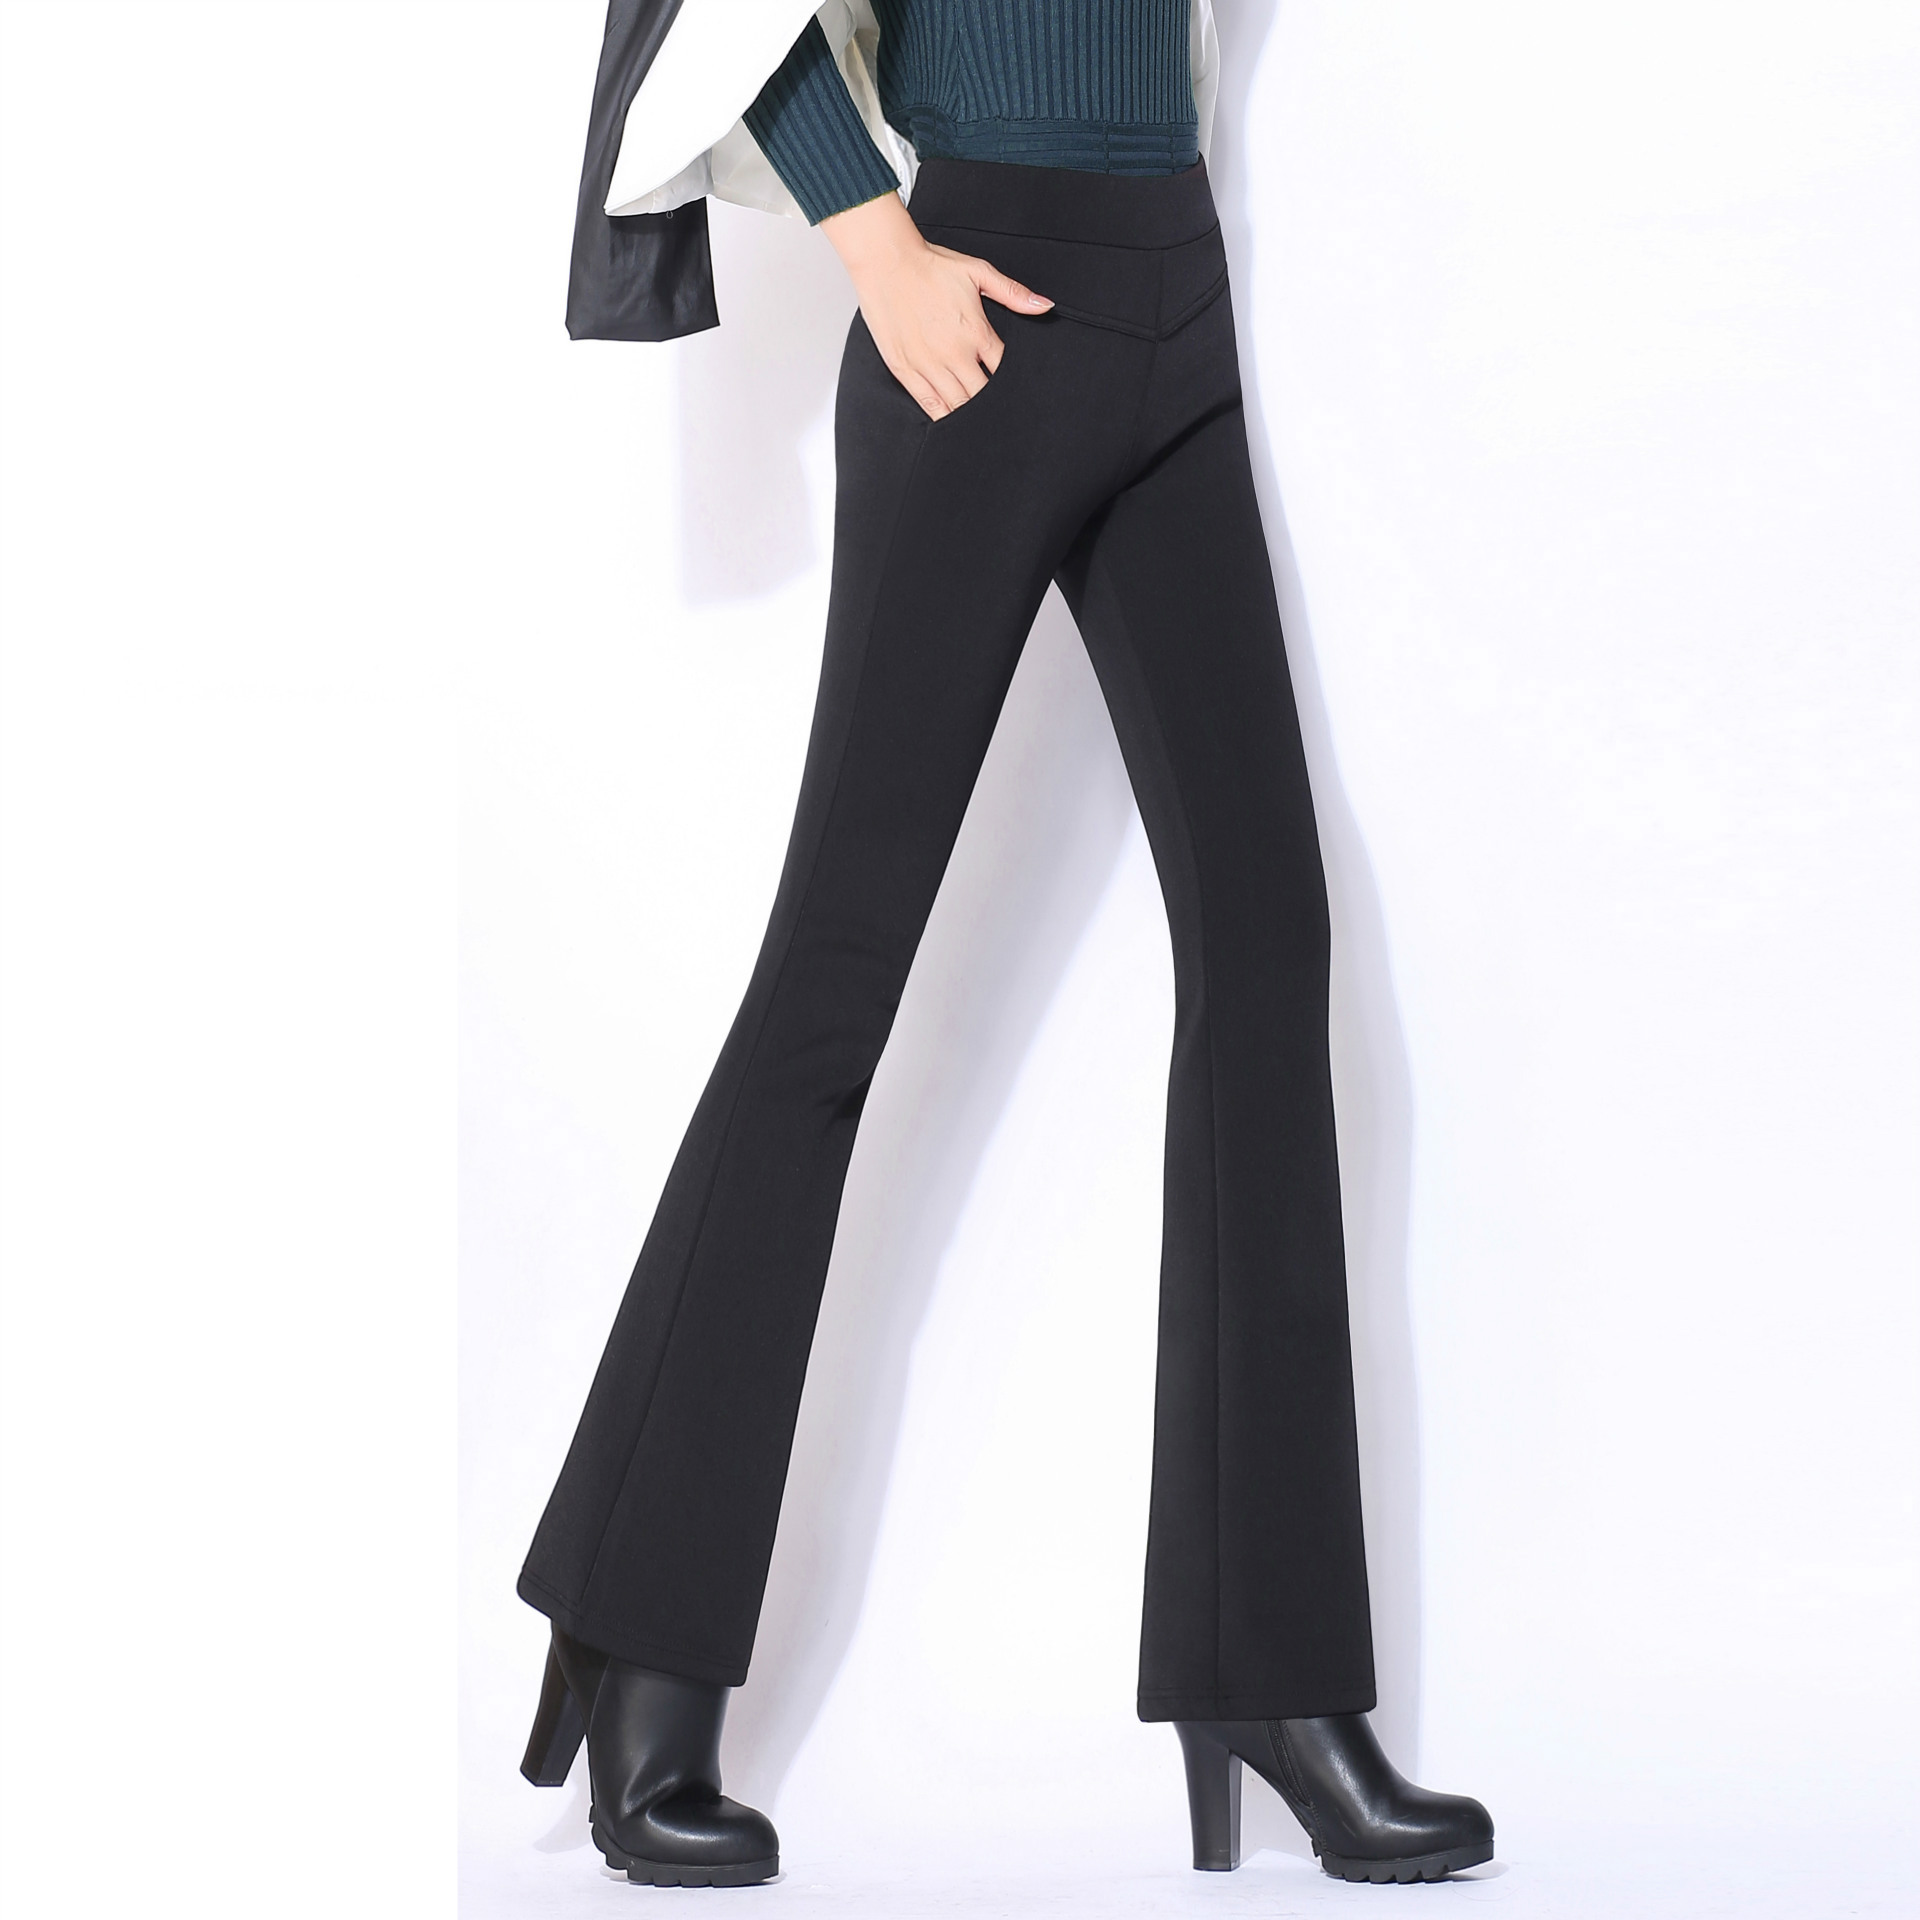 9cdd50376a51a Flared Pants Eastic Corduroy Boot Cut Pants Female Spring Plus Size 4XL  Wide Leg Trousers Women s High Waist Business s Legging-in Pants   Capris  from ...